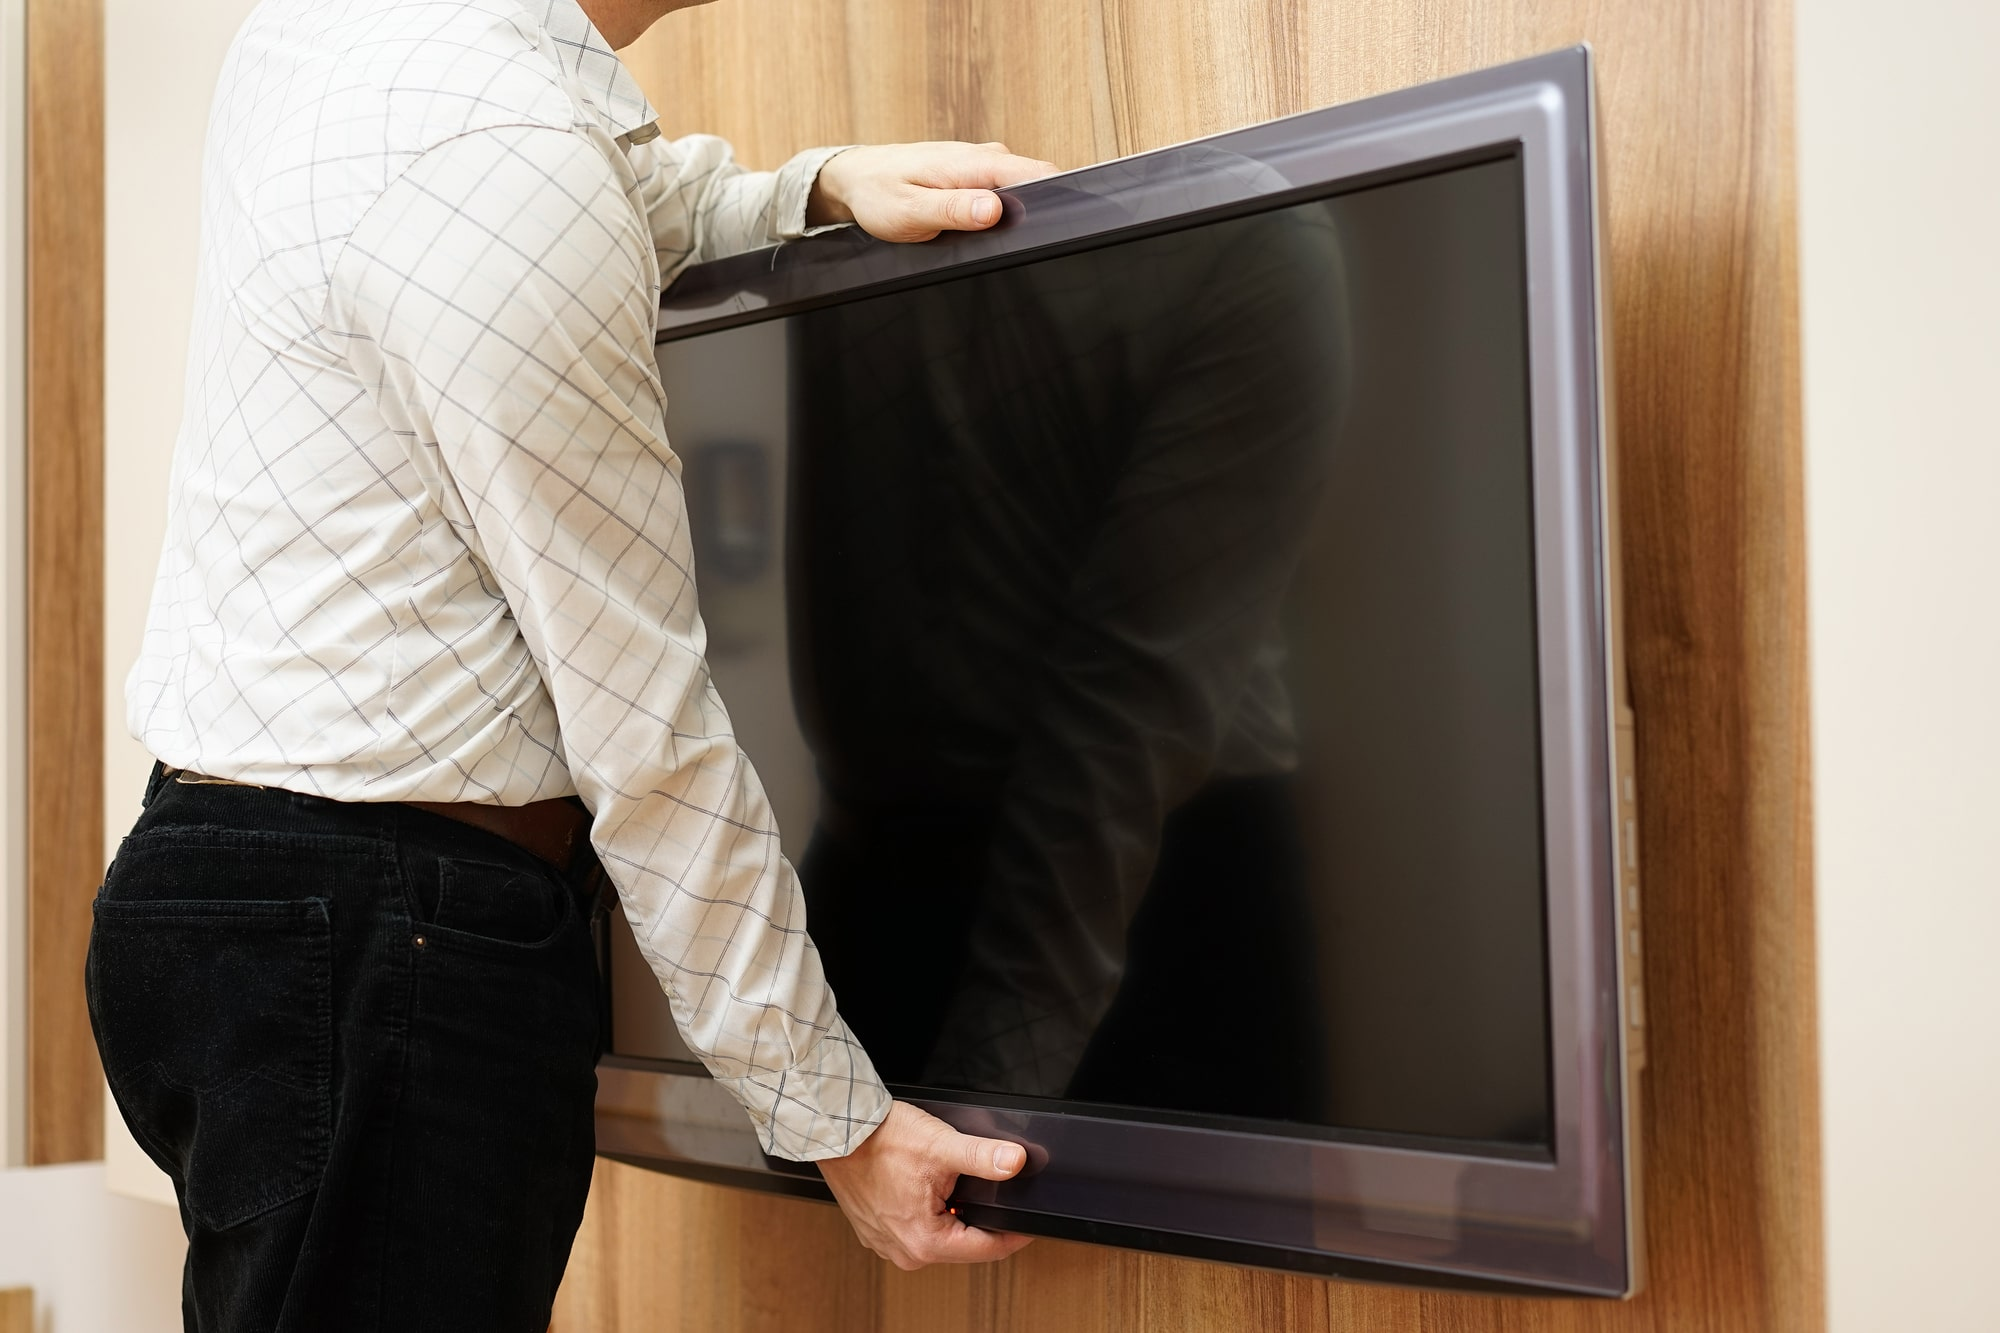 TV Storage Tips: How to Move a TV into Storage